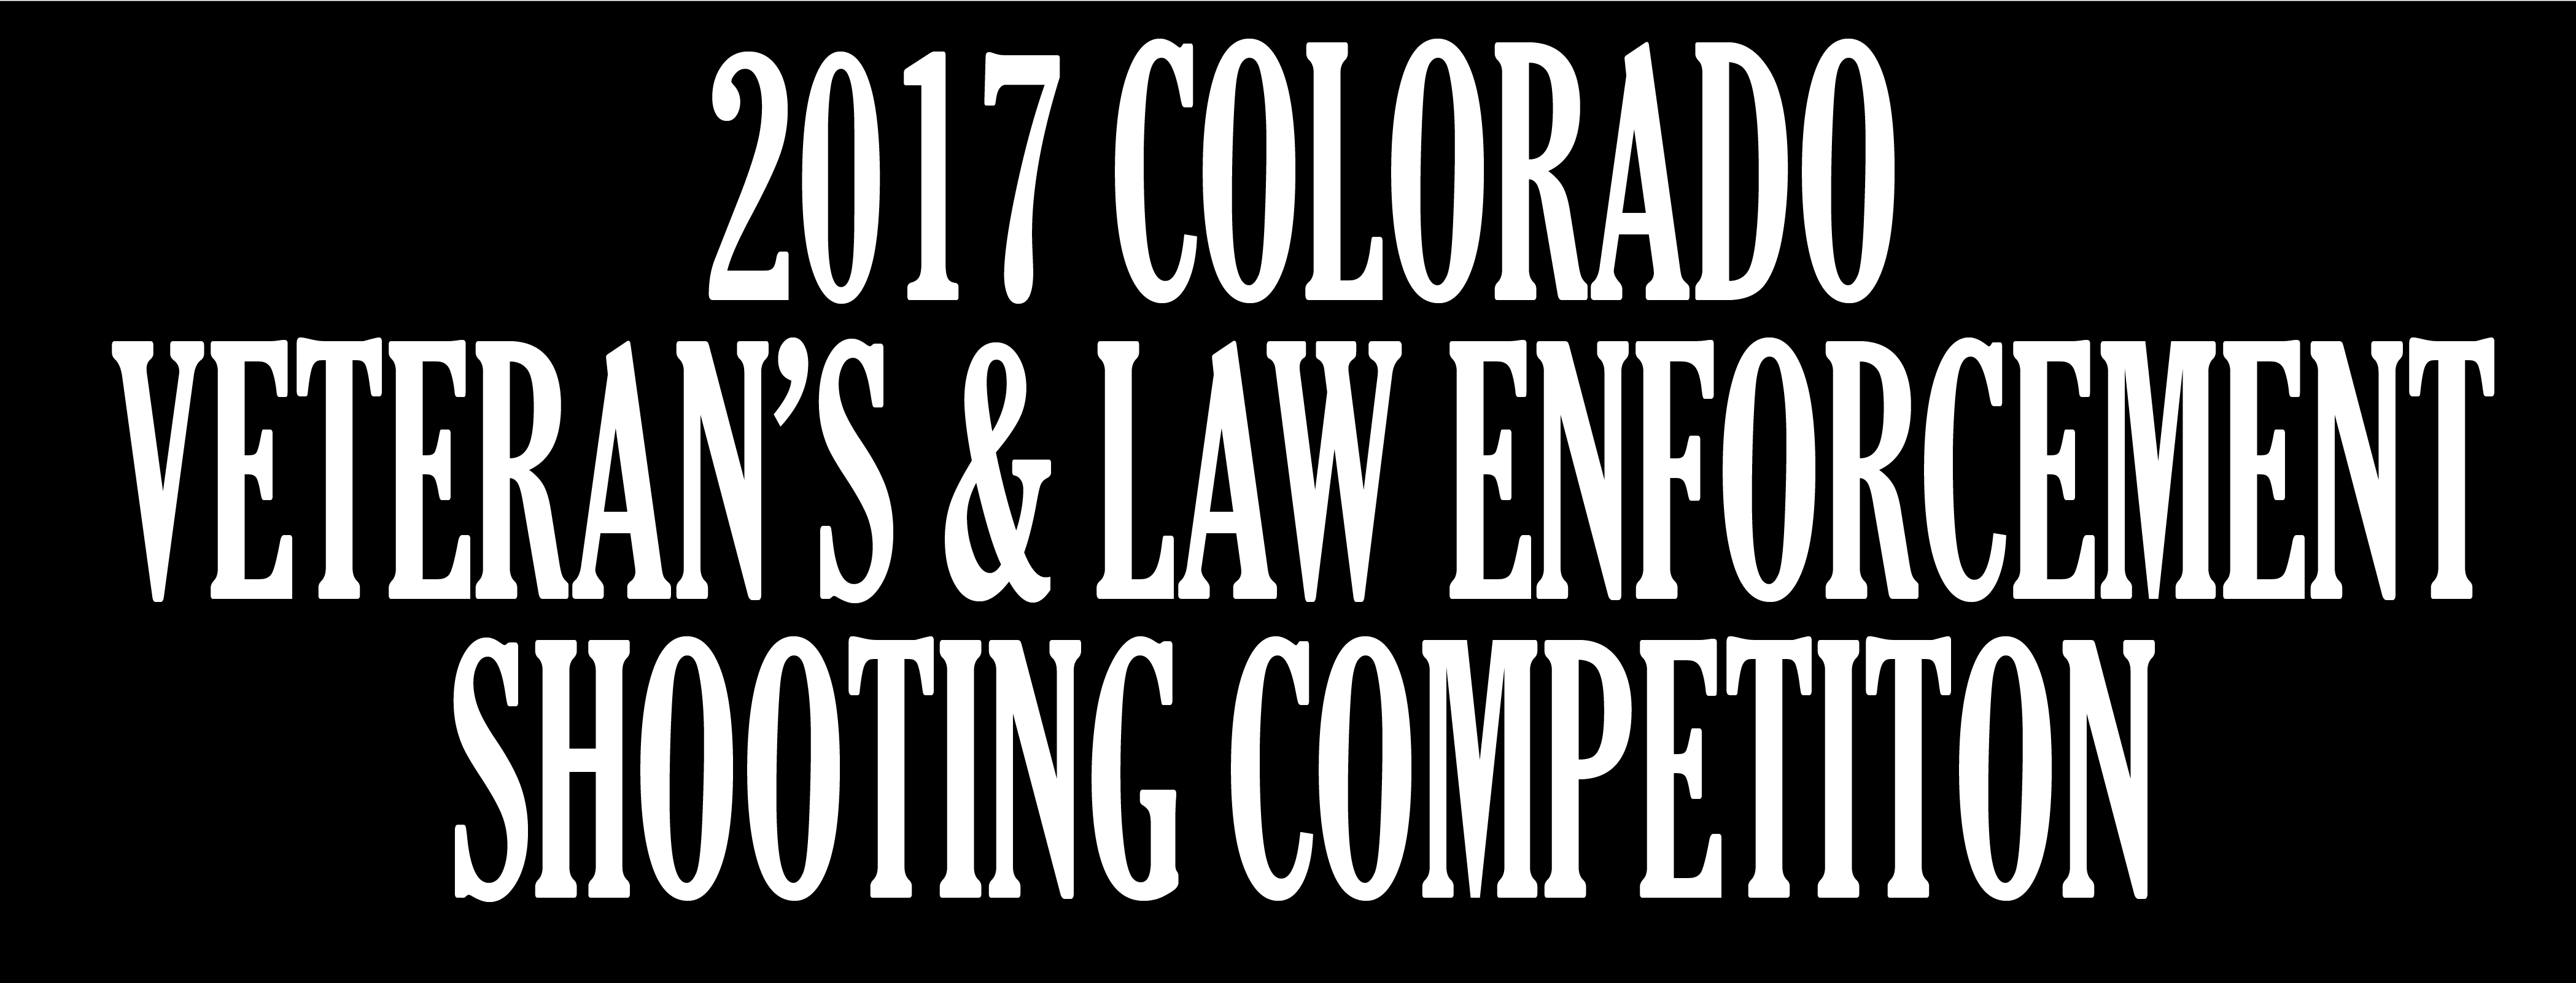 Colorado Veterans and Law Enforcement Competition